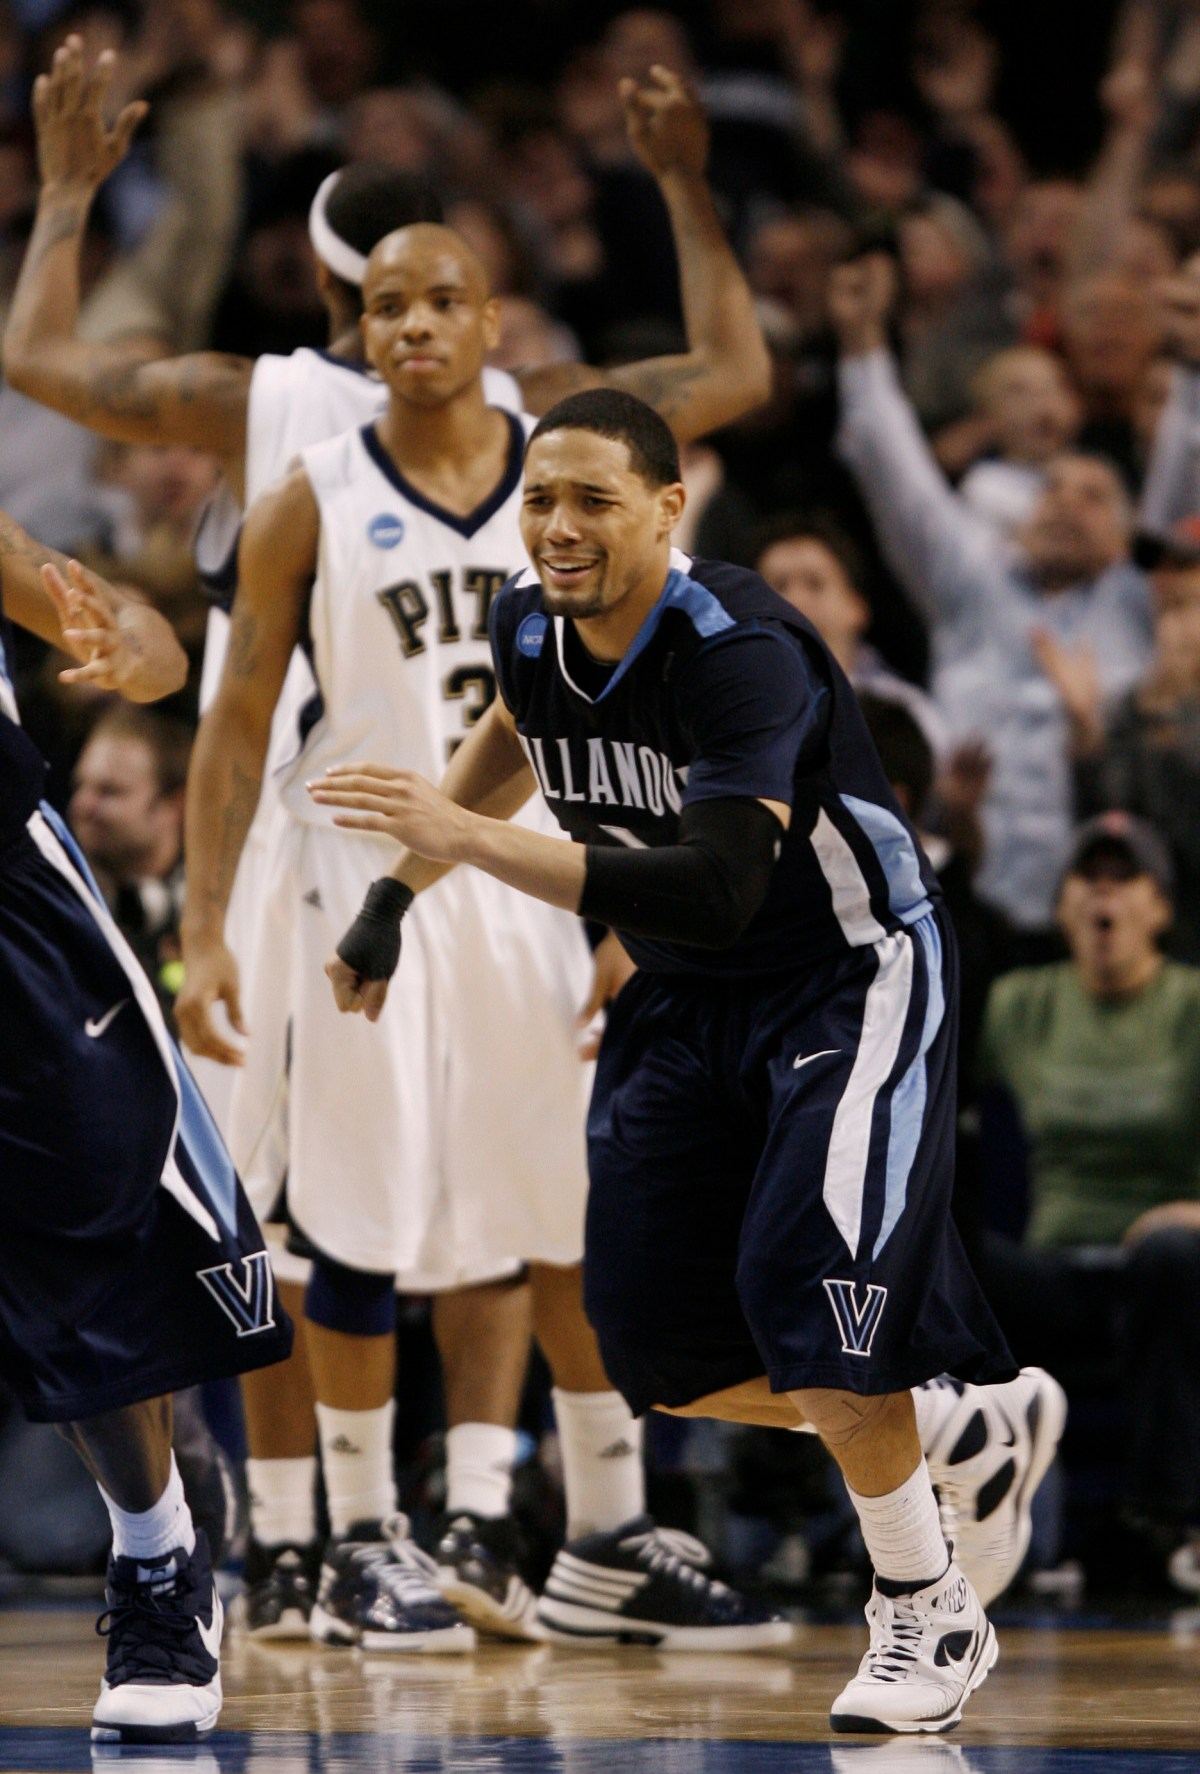 Villanova guard Scottie Reynolds (1) begins to celebrate his game-winning shot in front of Pittsburgh guard Jermaine Dixon (3) in the second half during a men's NCAA tournament regional championship college basketball game in Boston, Saturday, March 28, 2009. Villanova won 78-76 to advance to the Final Four. (AP Photo/Winslow Townson)